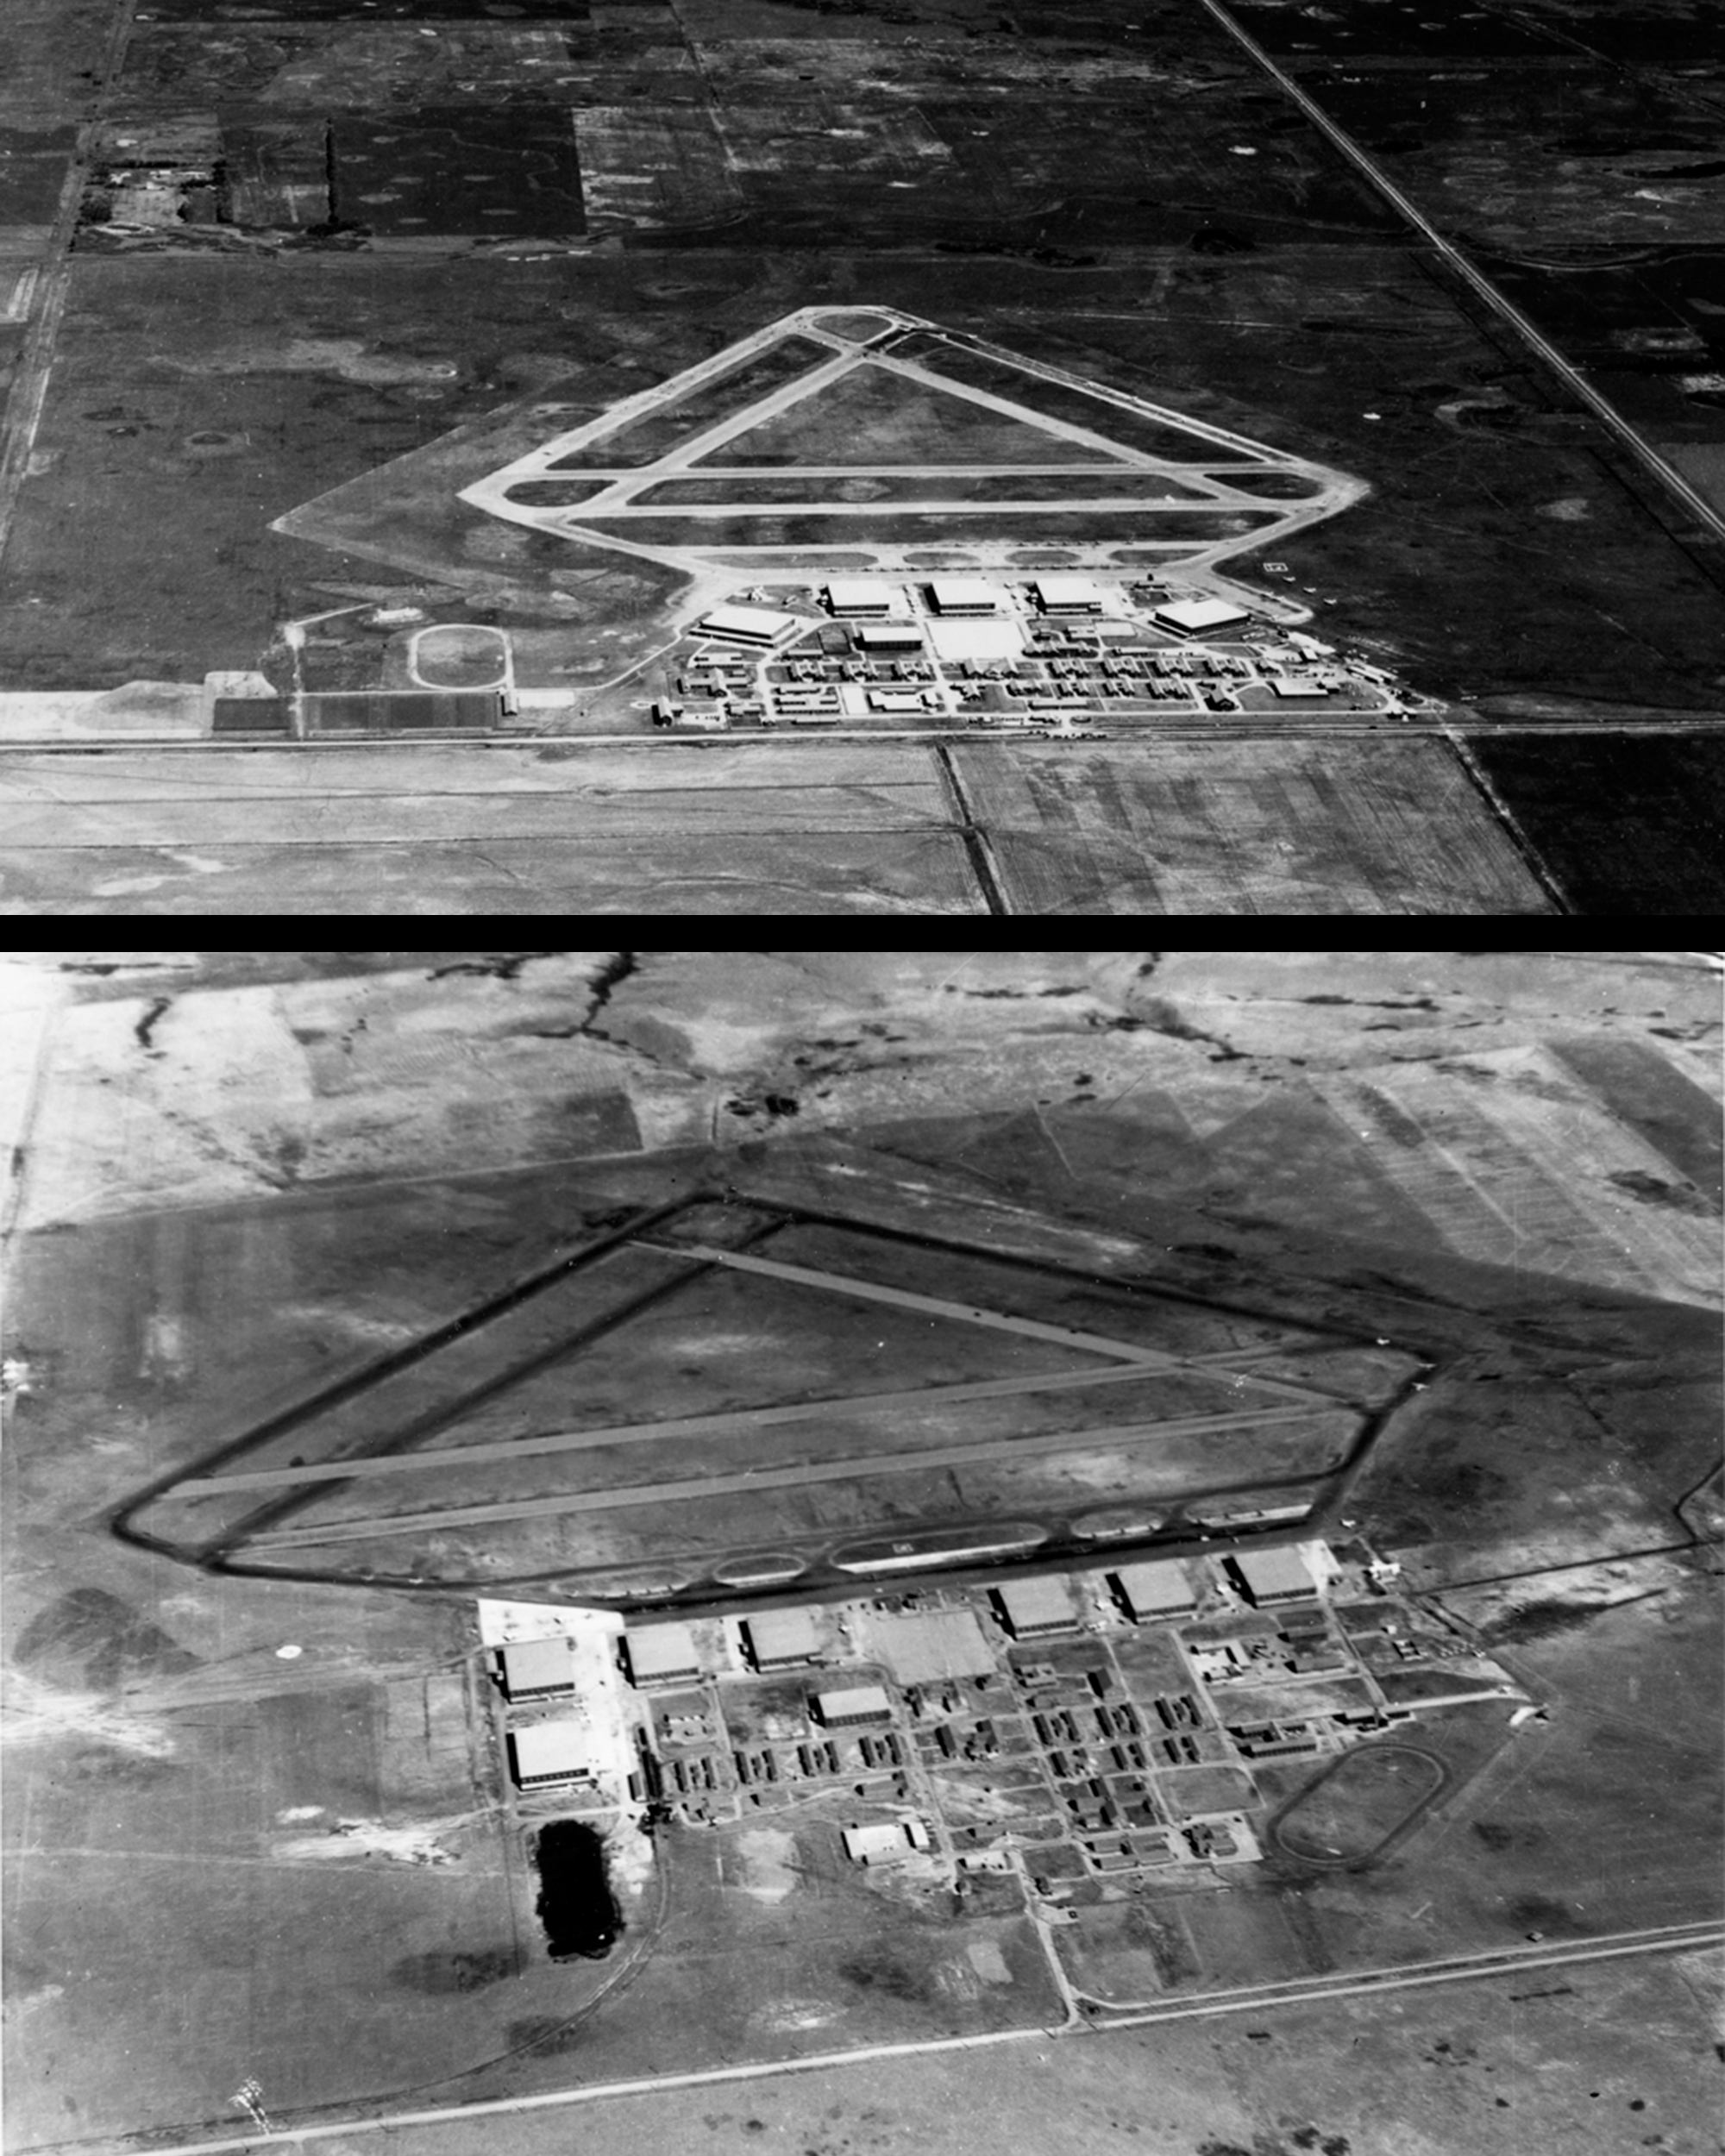 No. 12 Service Flying Training School at RCAF Brandon, Manitoba (top), and No. 39 SFTS at RCAF Swift Current, Saskatchewan, exhibit the standard British Commonwealth Air Training Plan airfield layout. PHOTO: DND